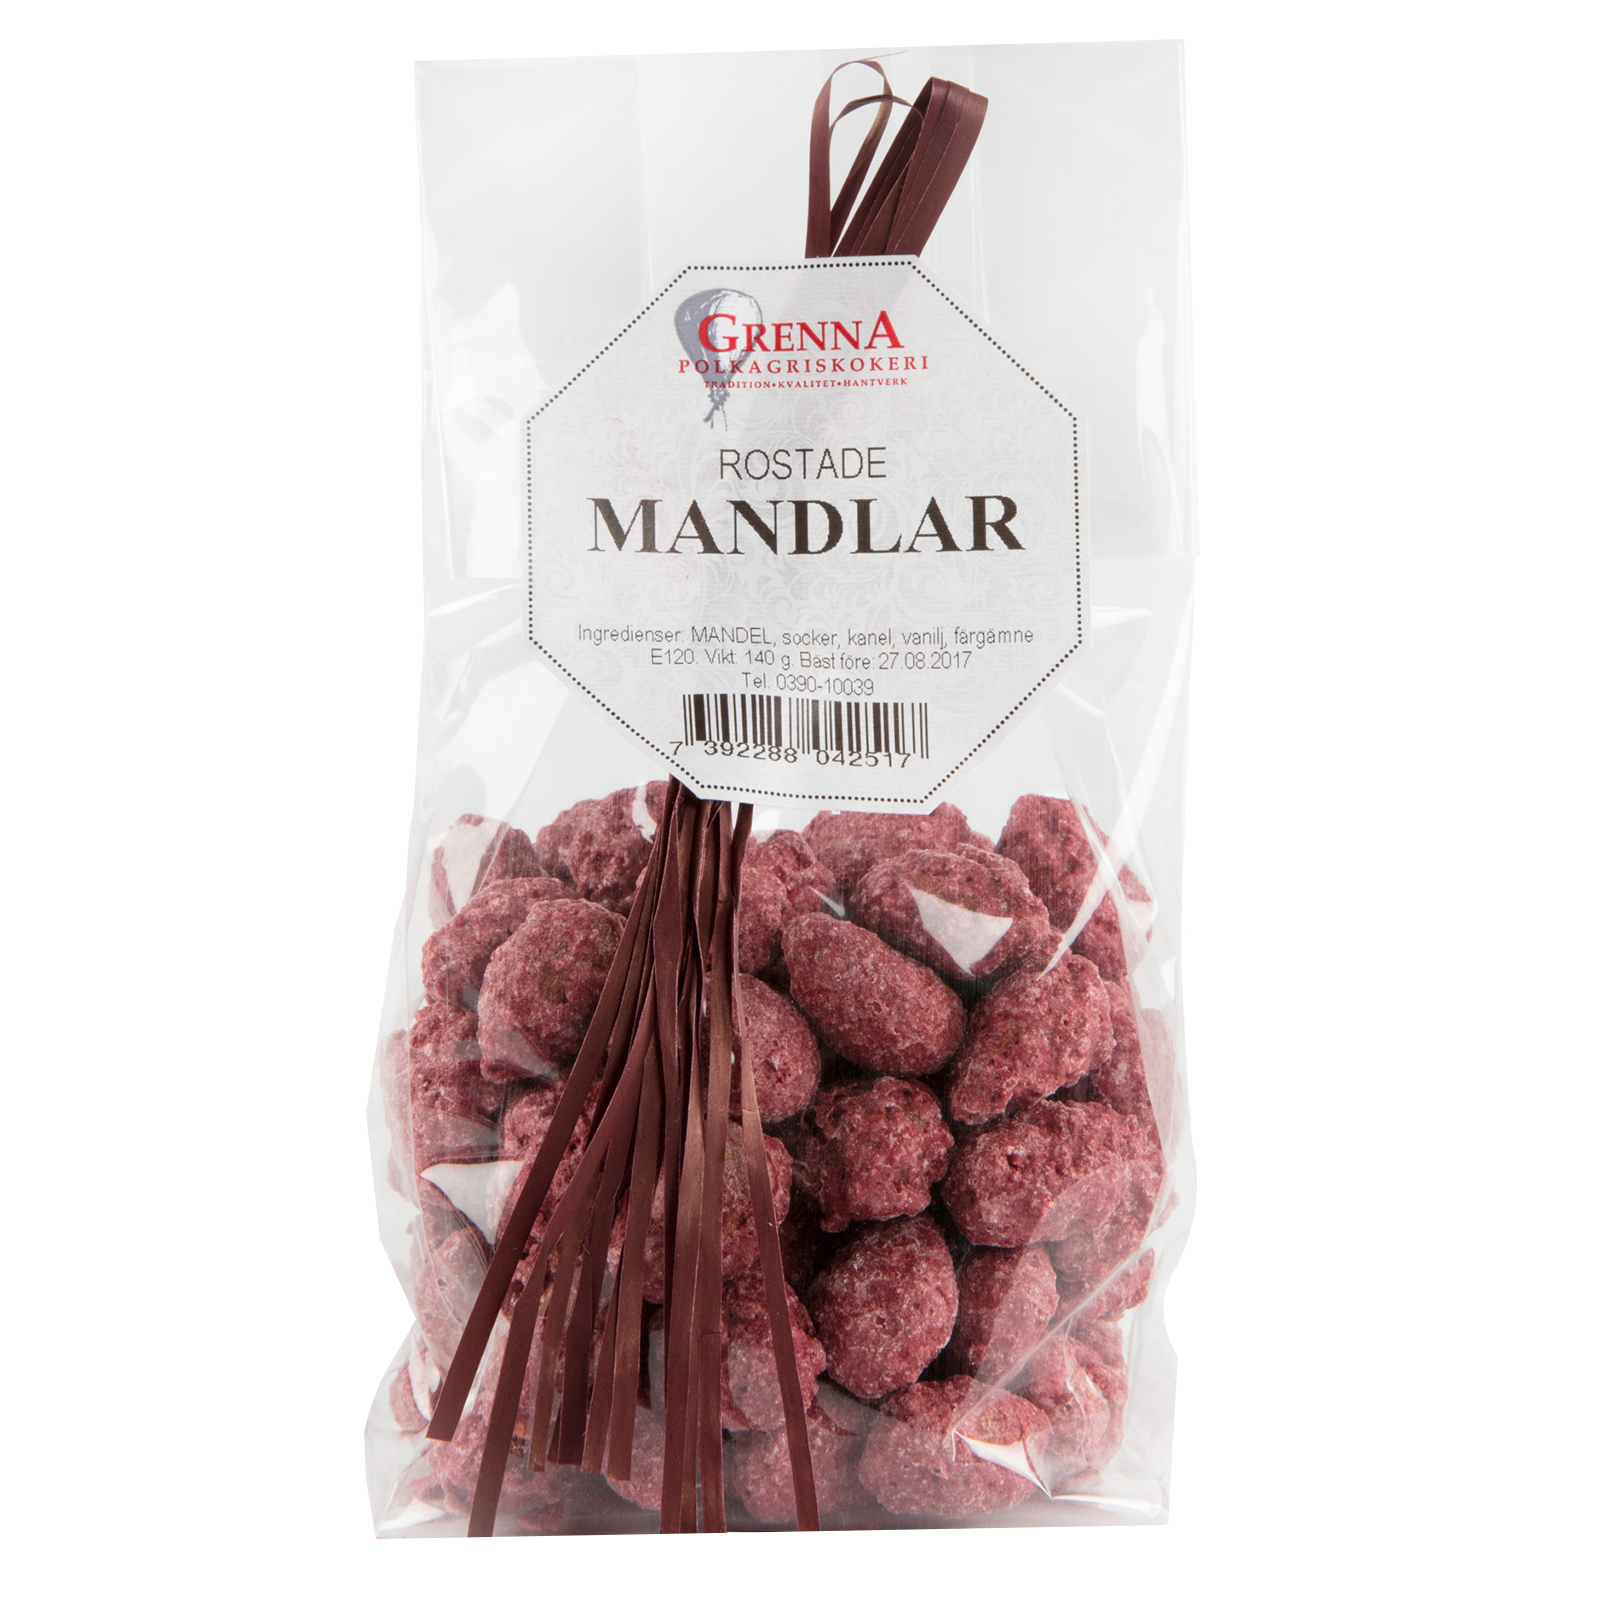 Candied almonds